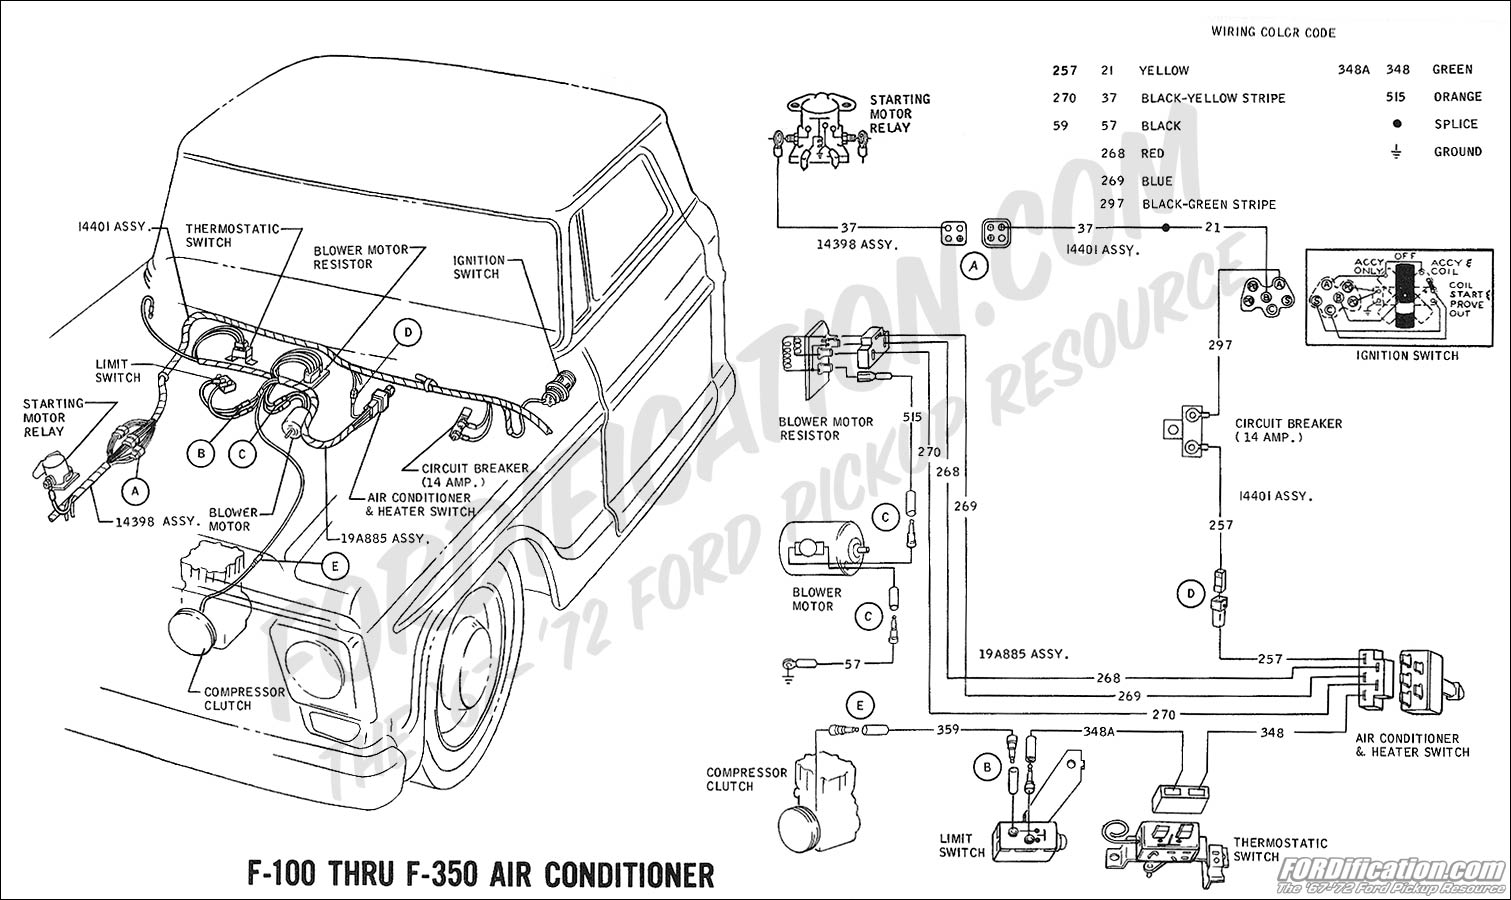 ford air conditioning diagrams wiring diagram third level International H Wiring Diagram ford air conditioning schematics wiring diagrams img 1996 mustang air conditioning diagram ford air conditioning diagrams